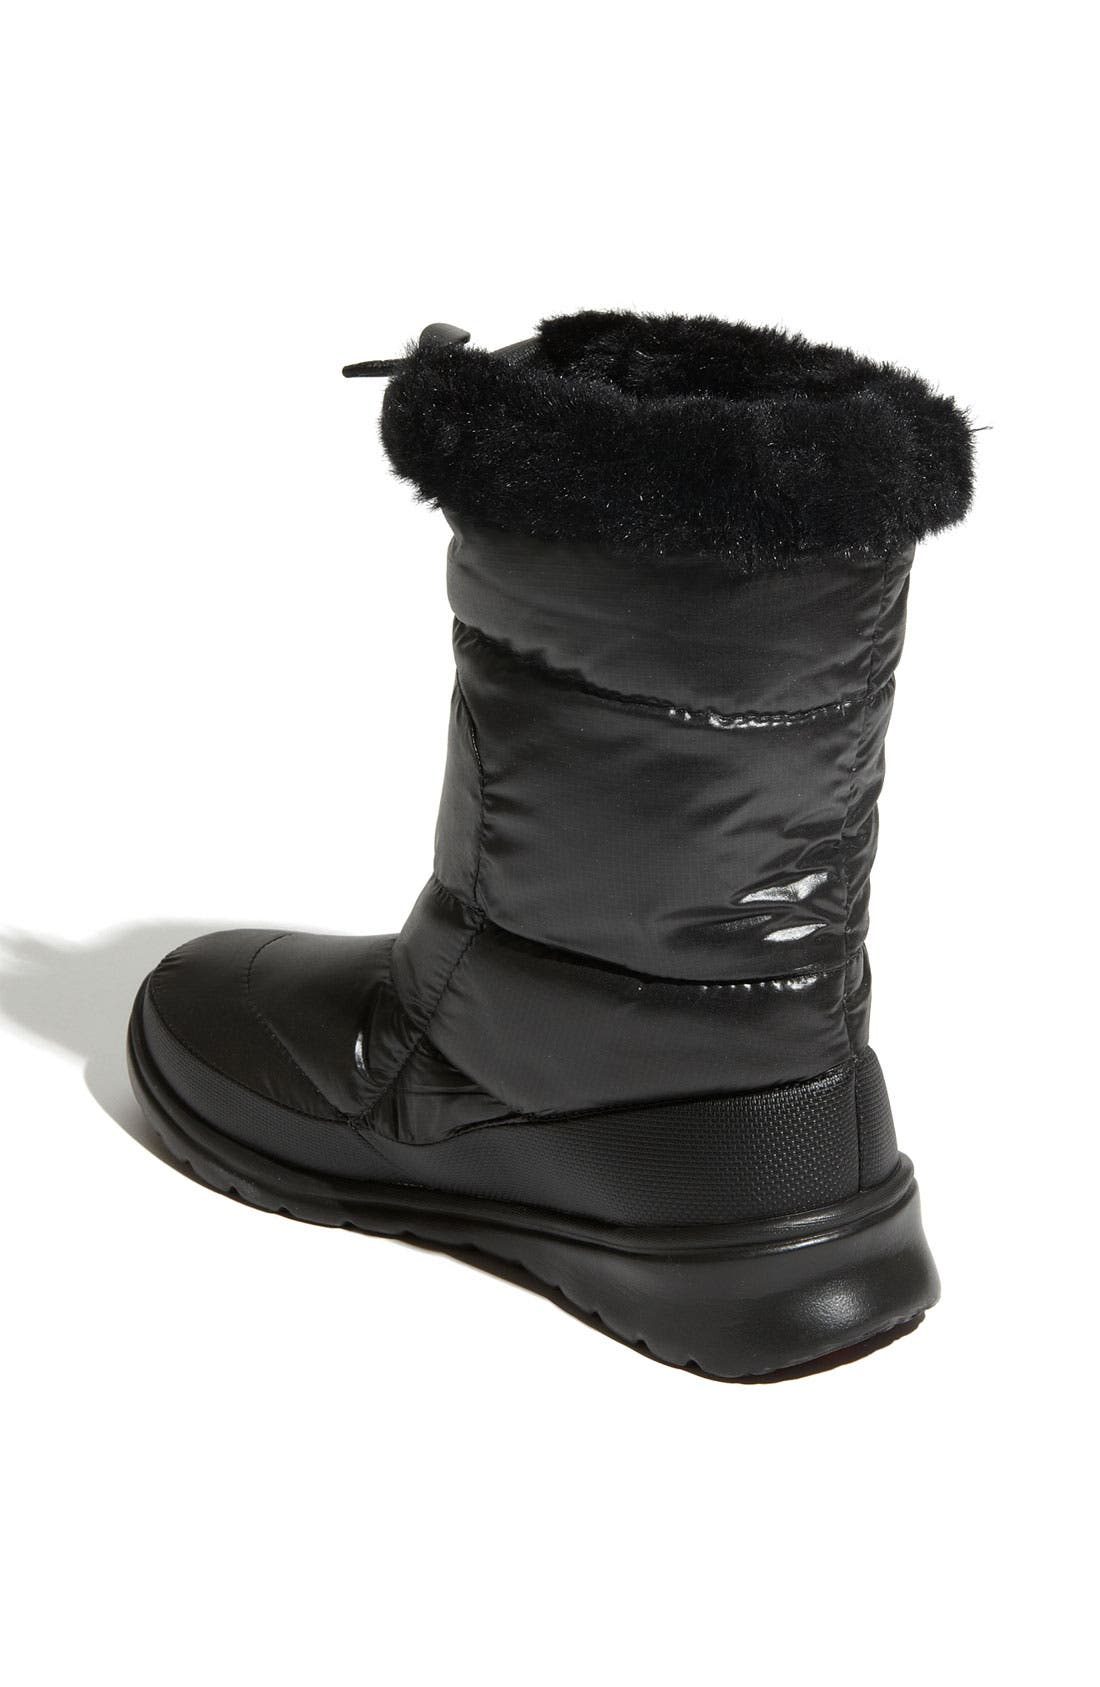 Alternate Image 2  - The North Face 'Nuptse Fur IV' Bootie